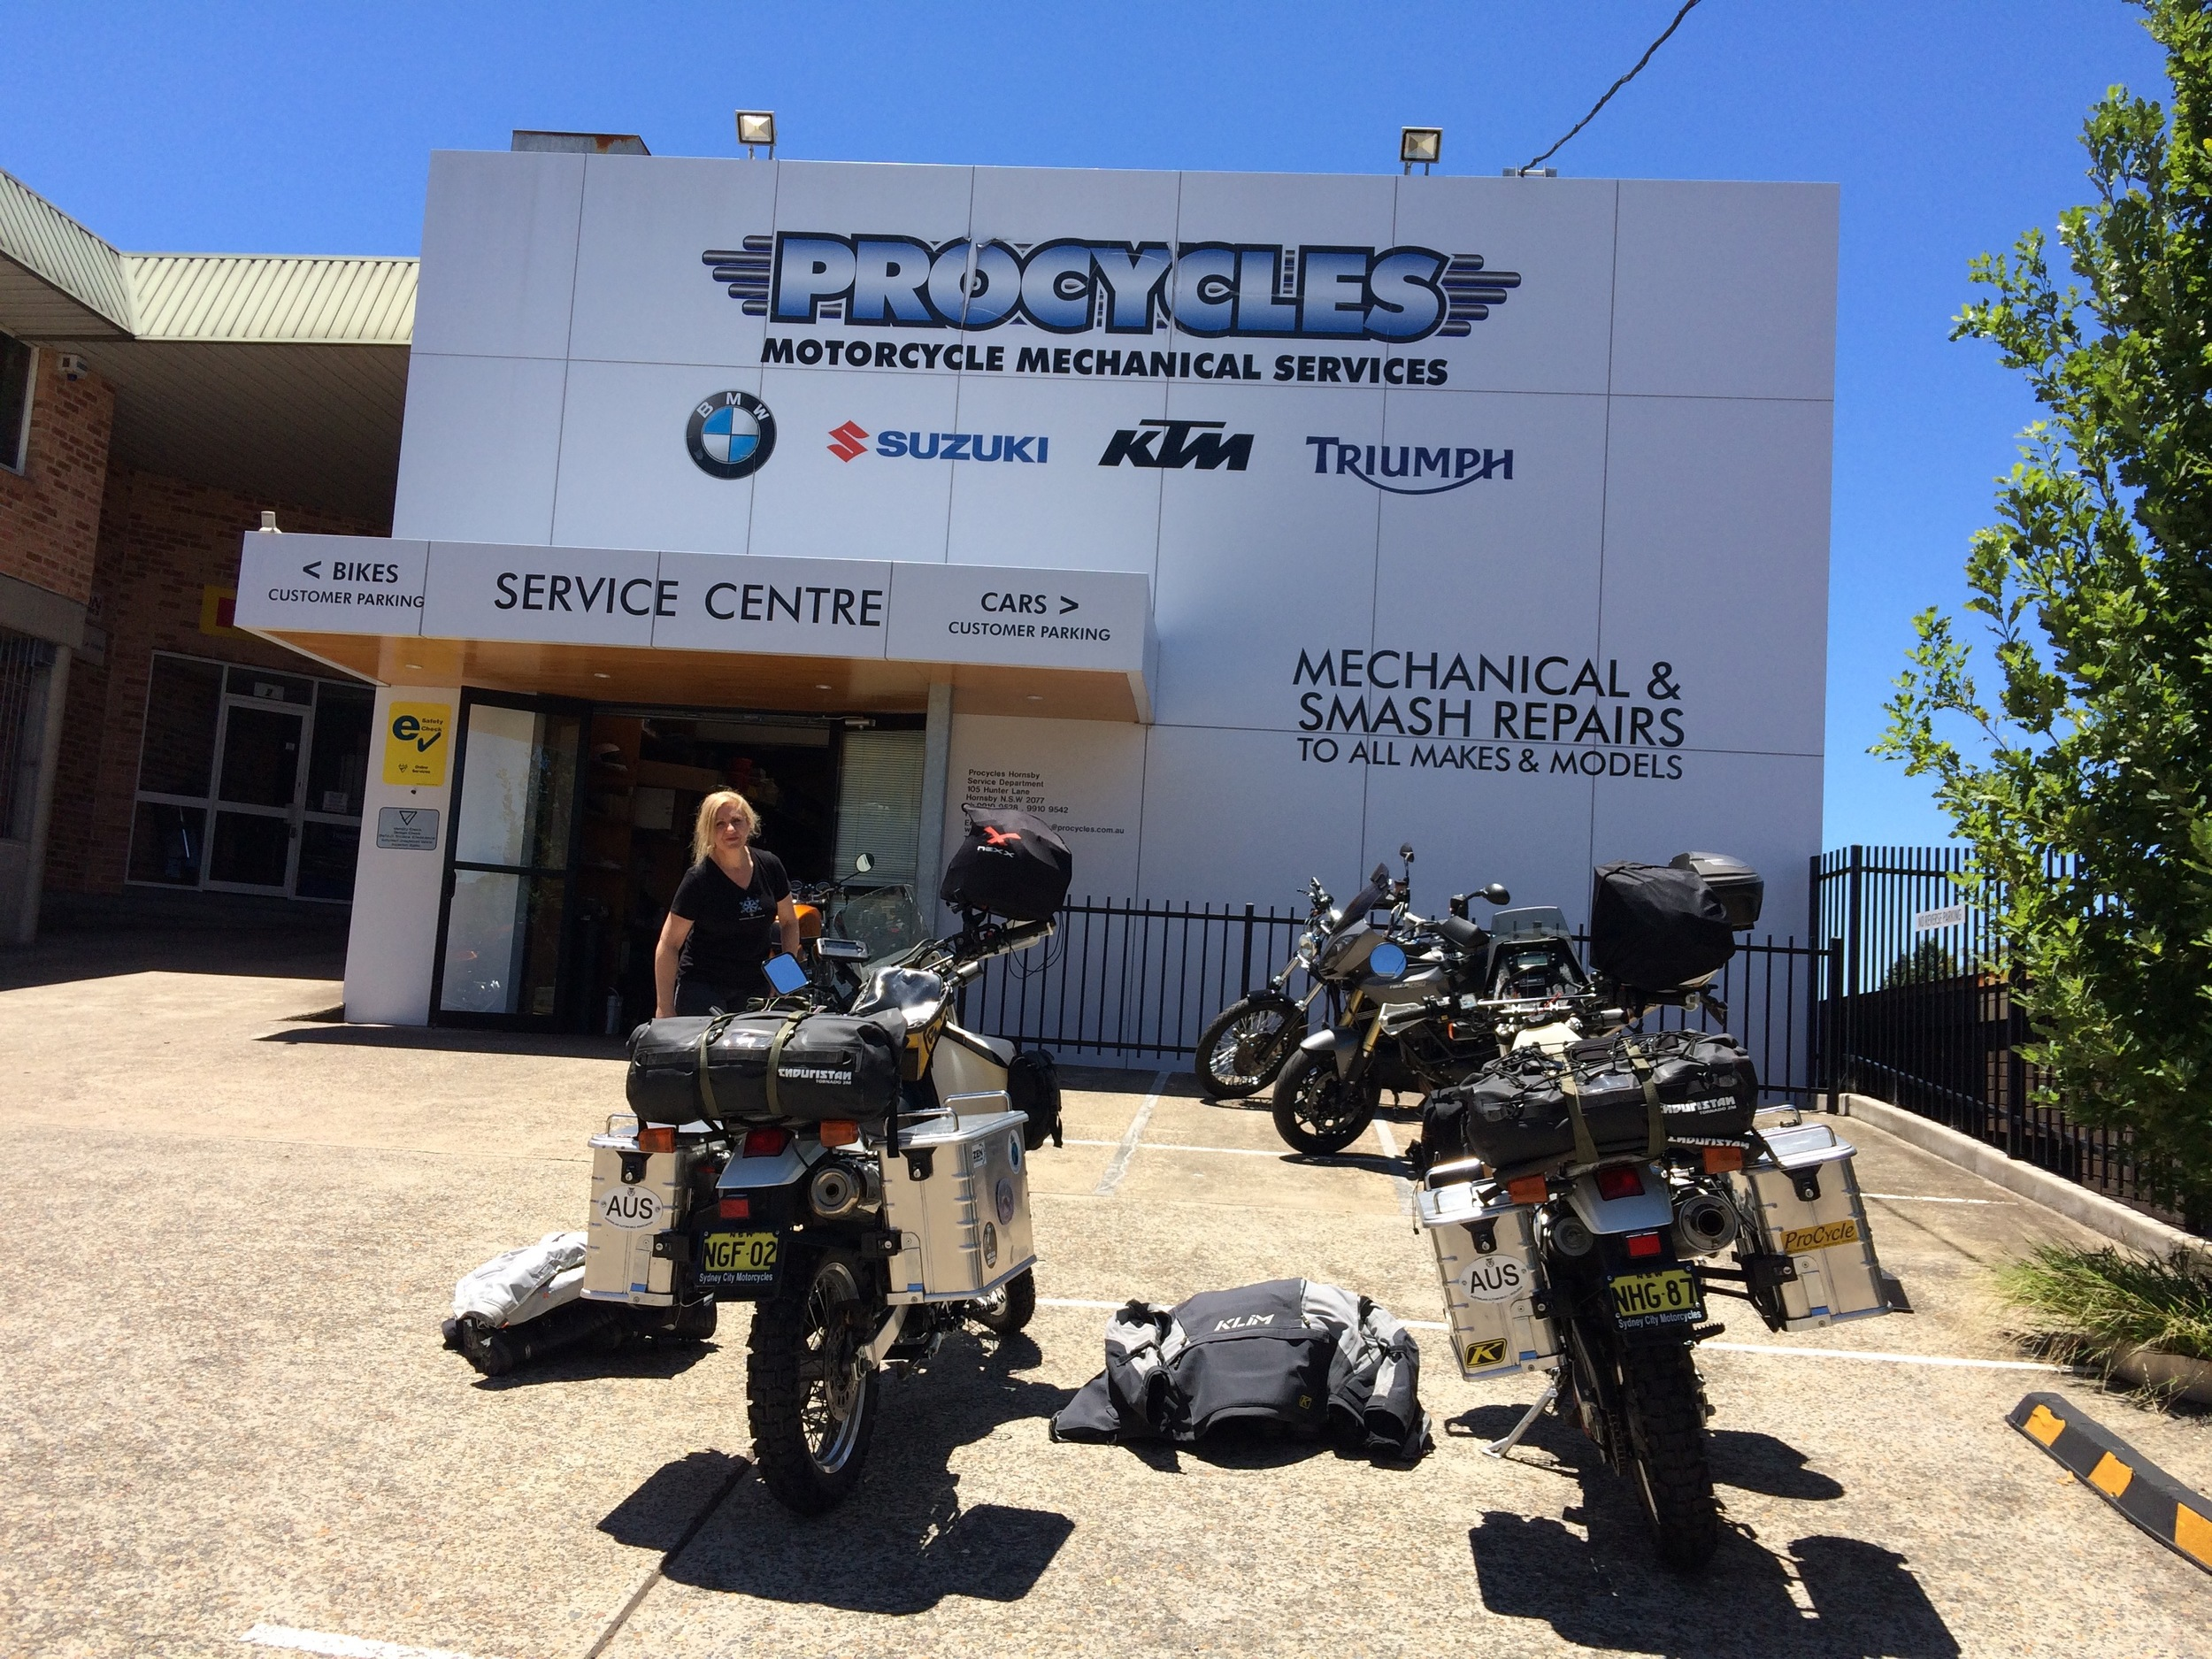 Delivering the bikes to be crated and sent to Argentina